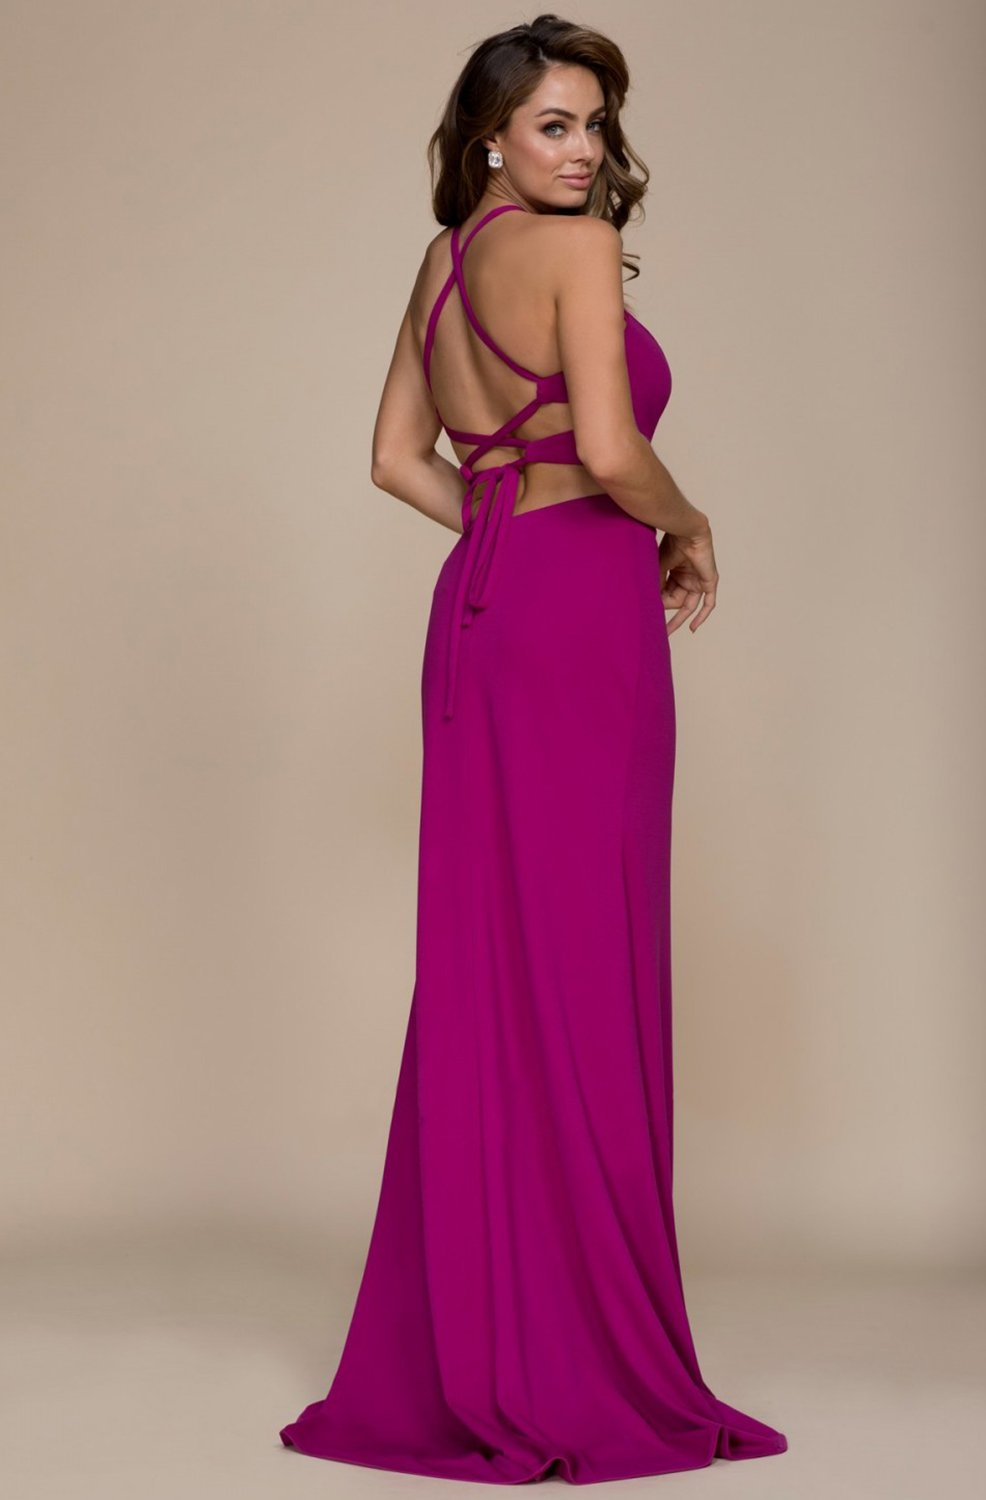 Nox Anabel - C026 Sexy Cutout Halter Neck Lace-up Back Sheath Gown In Pink